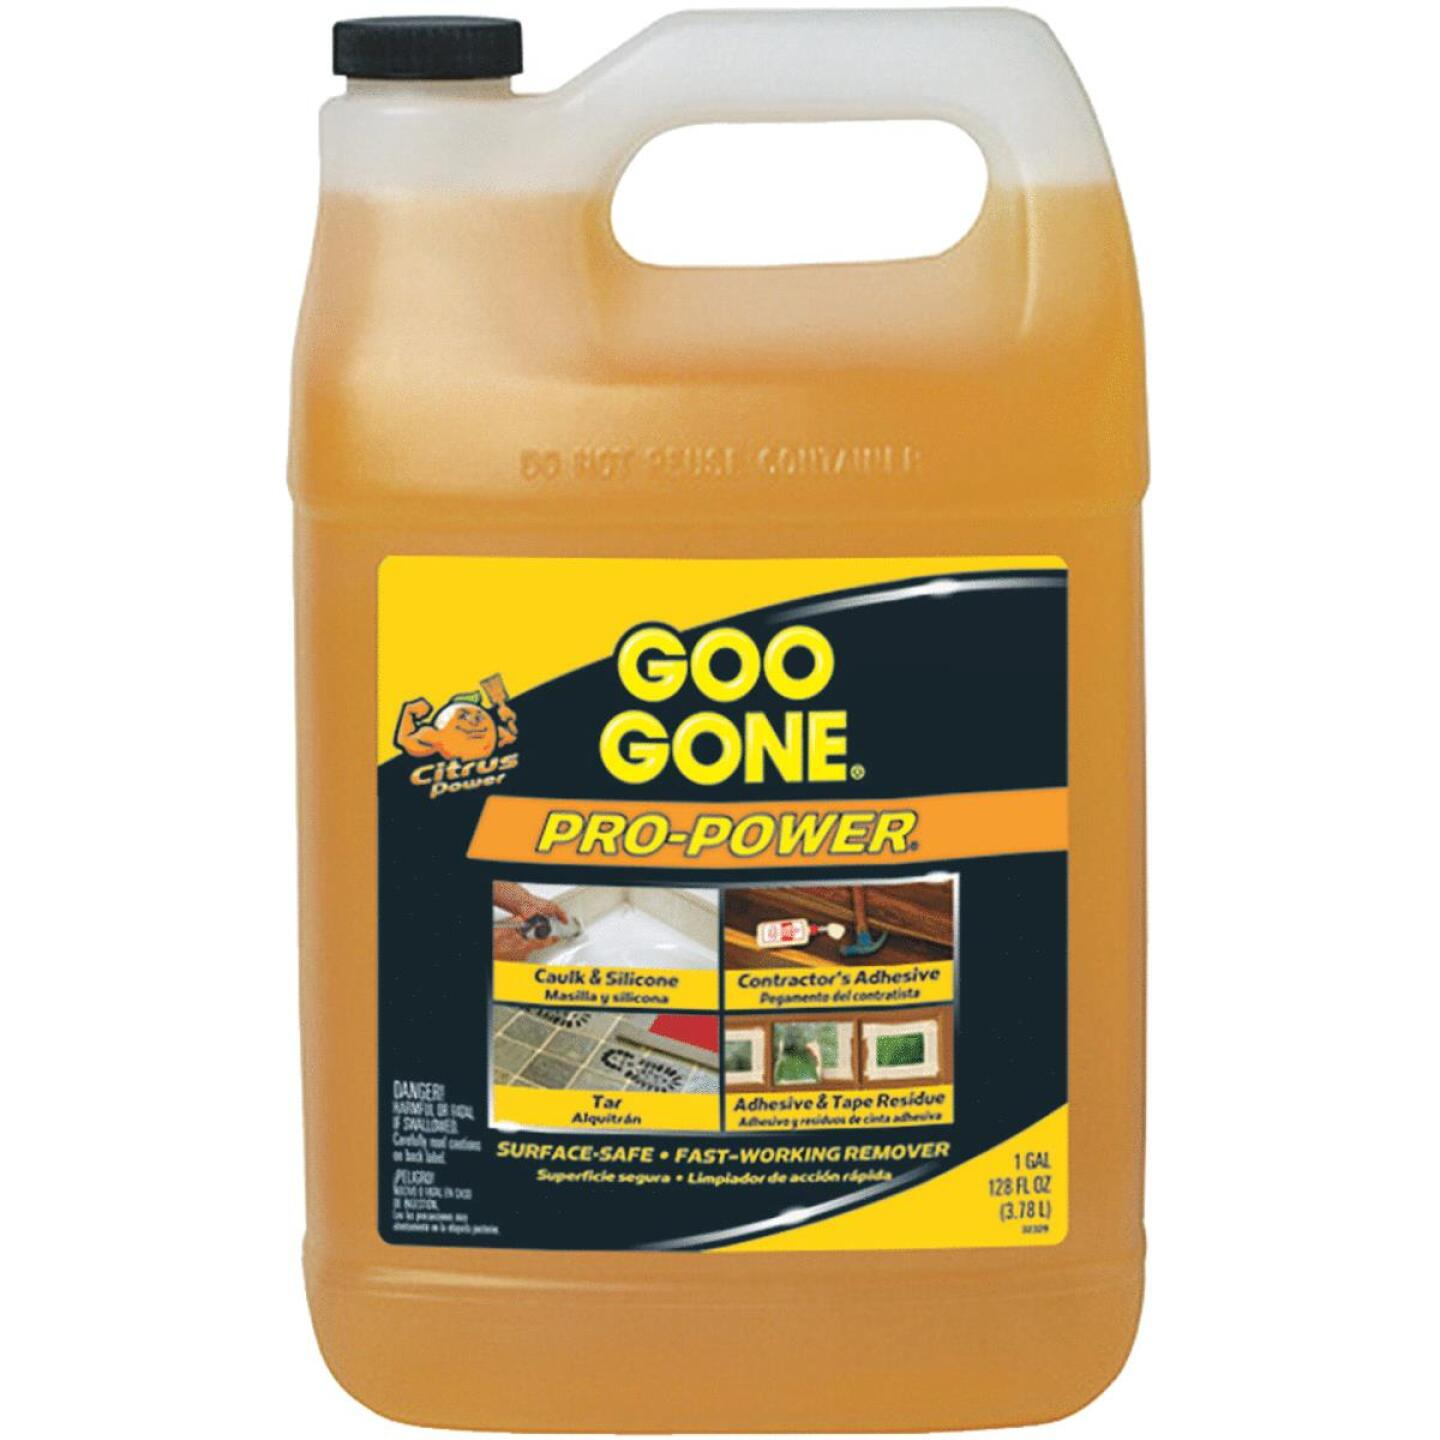 Goo Gone 1 Gal. Pro-Power Adhesive Remover Image 218